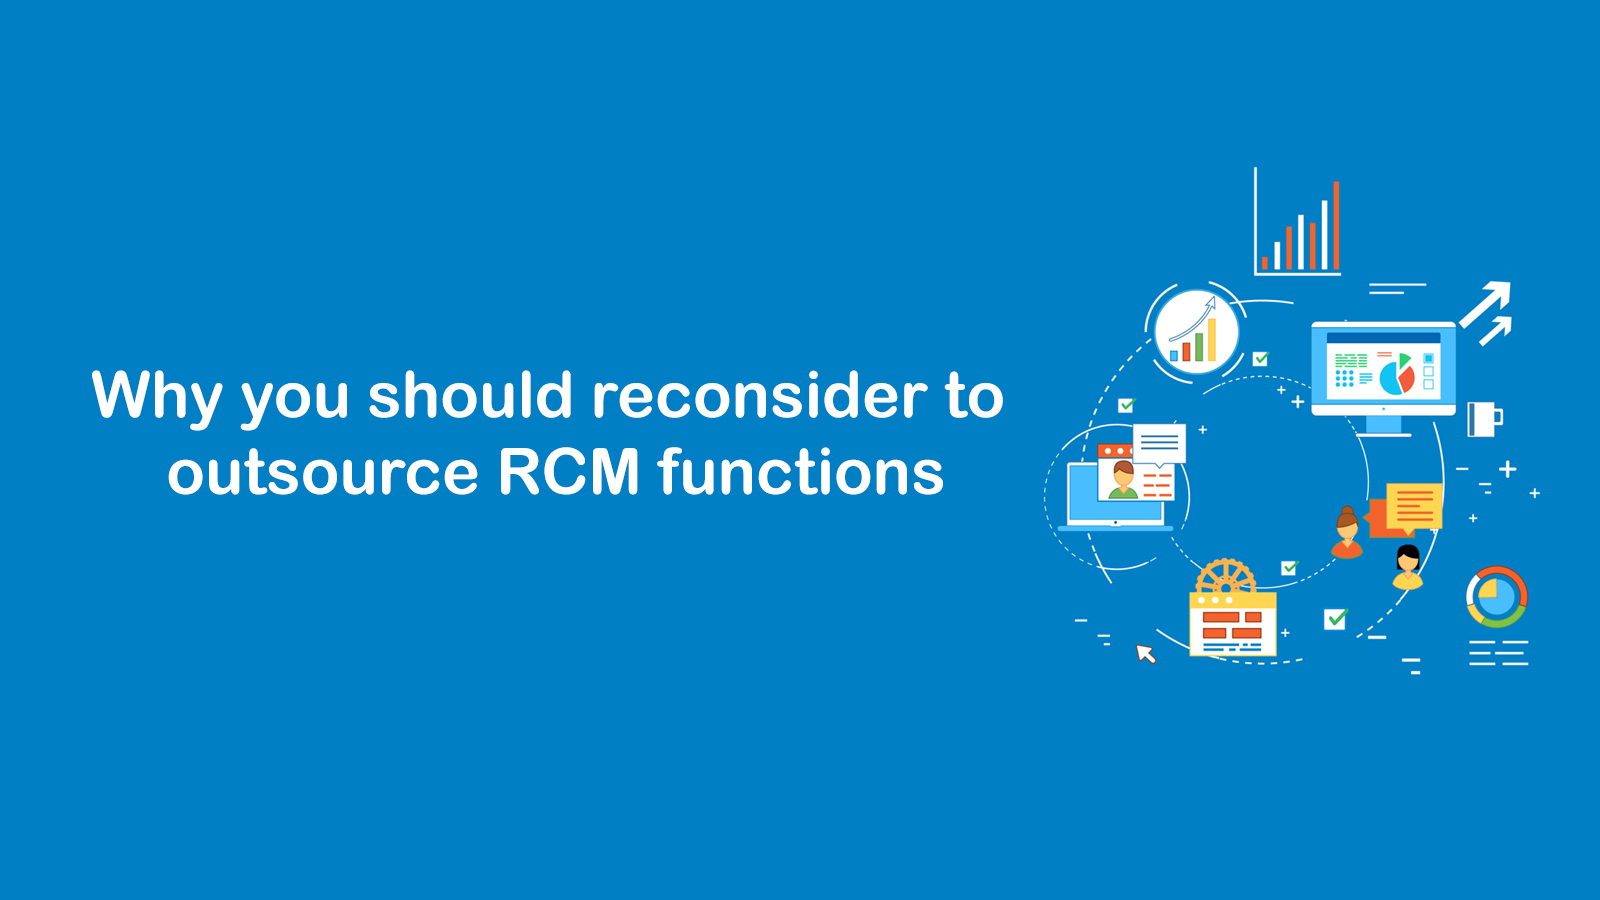 Why you should reconsider to outsource RCM functions